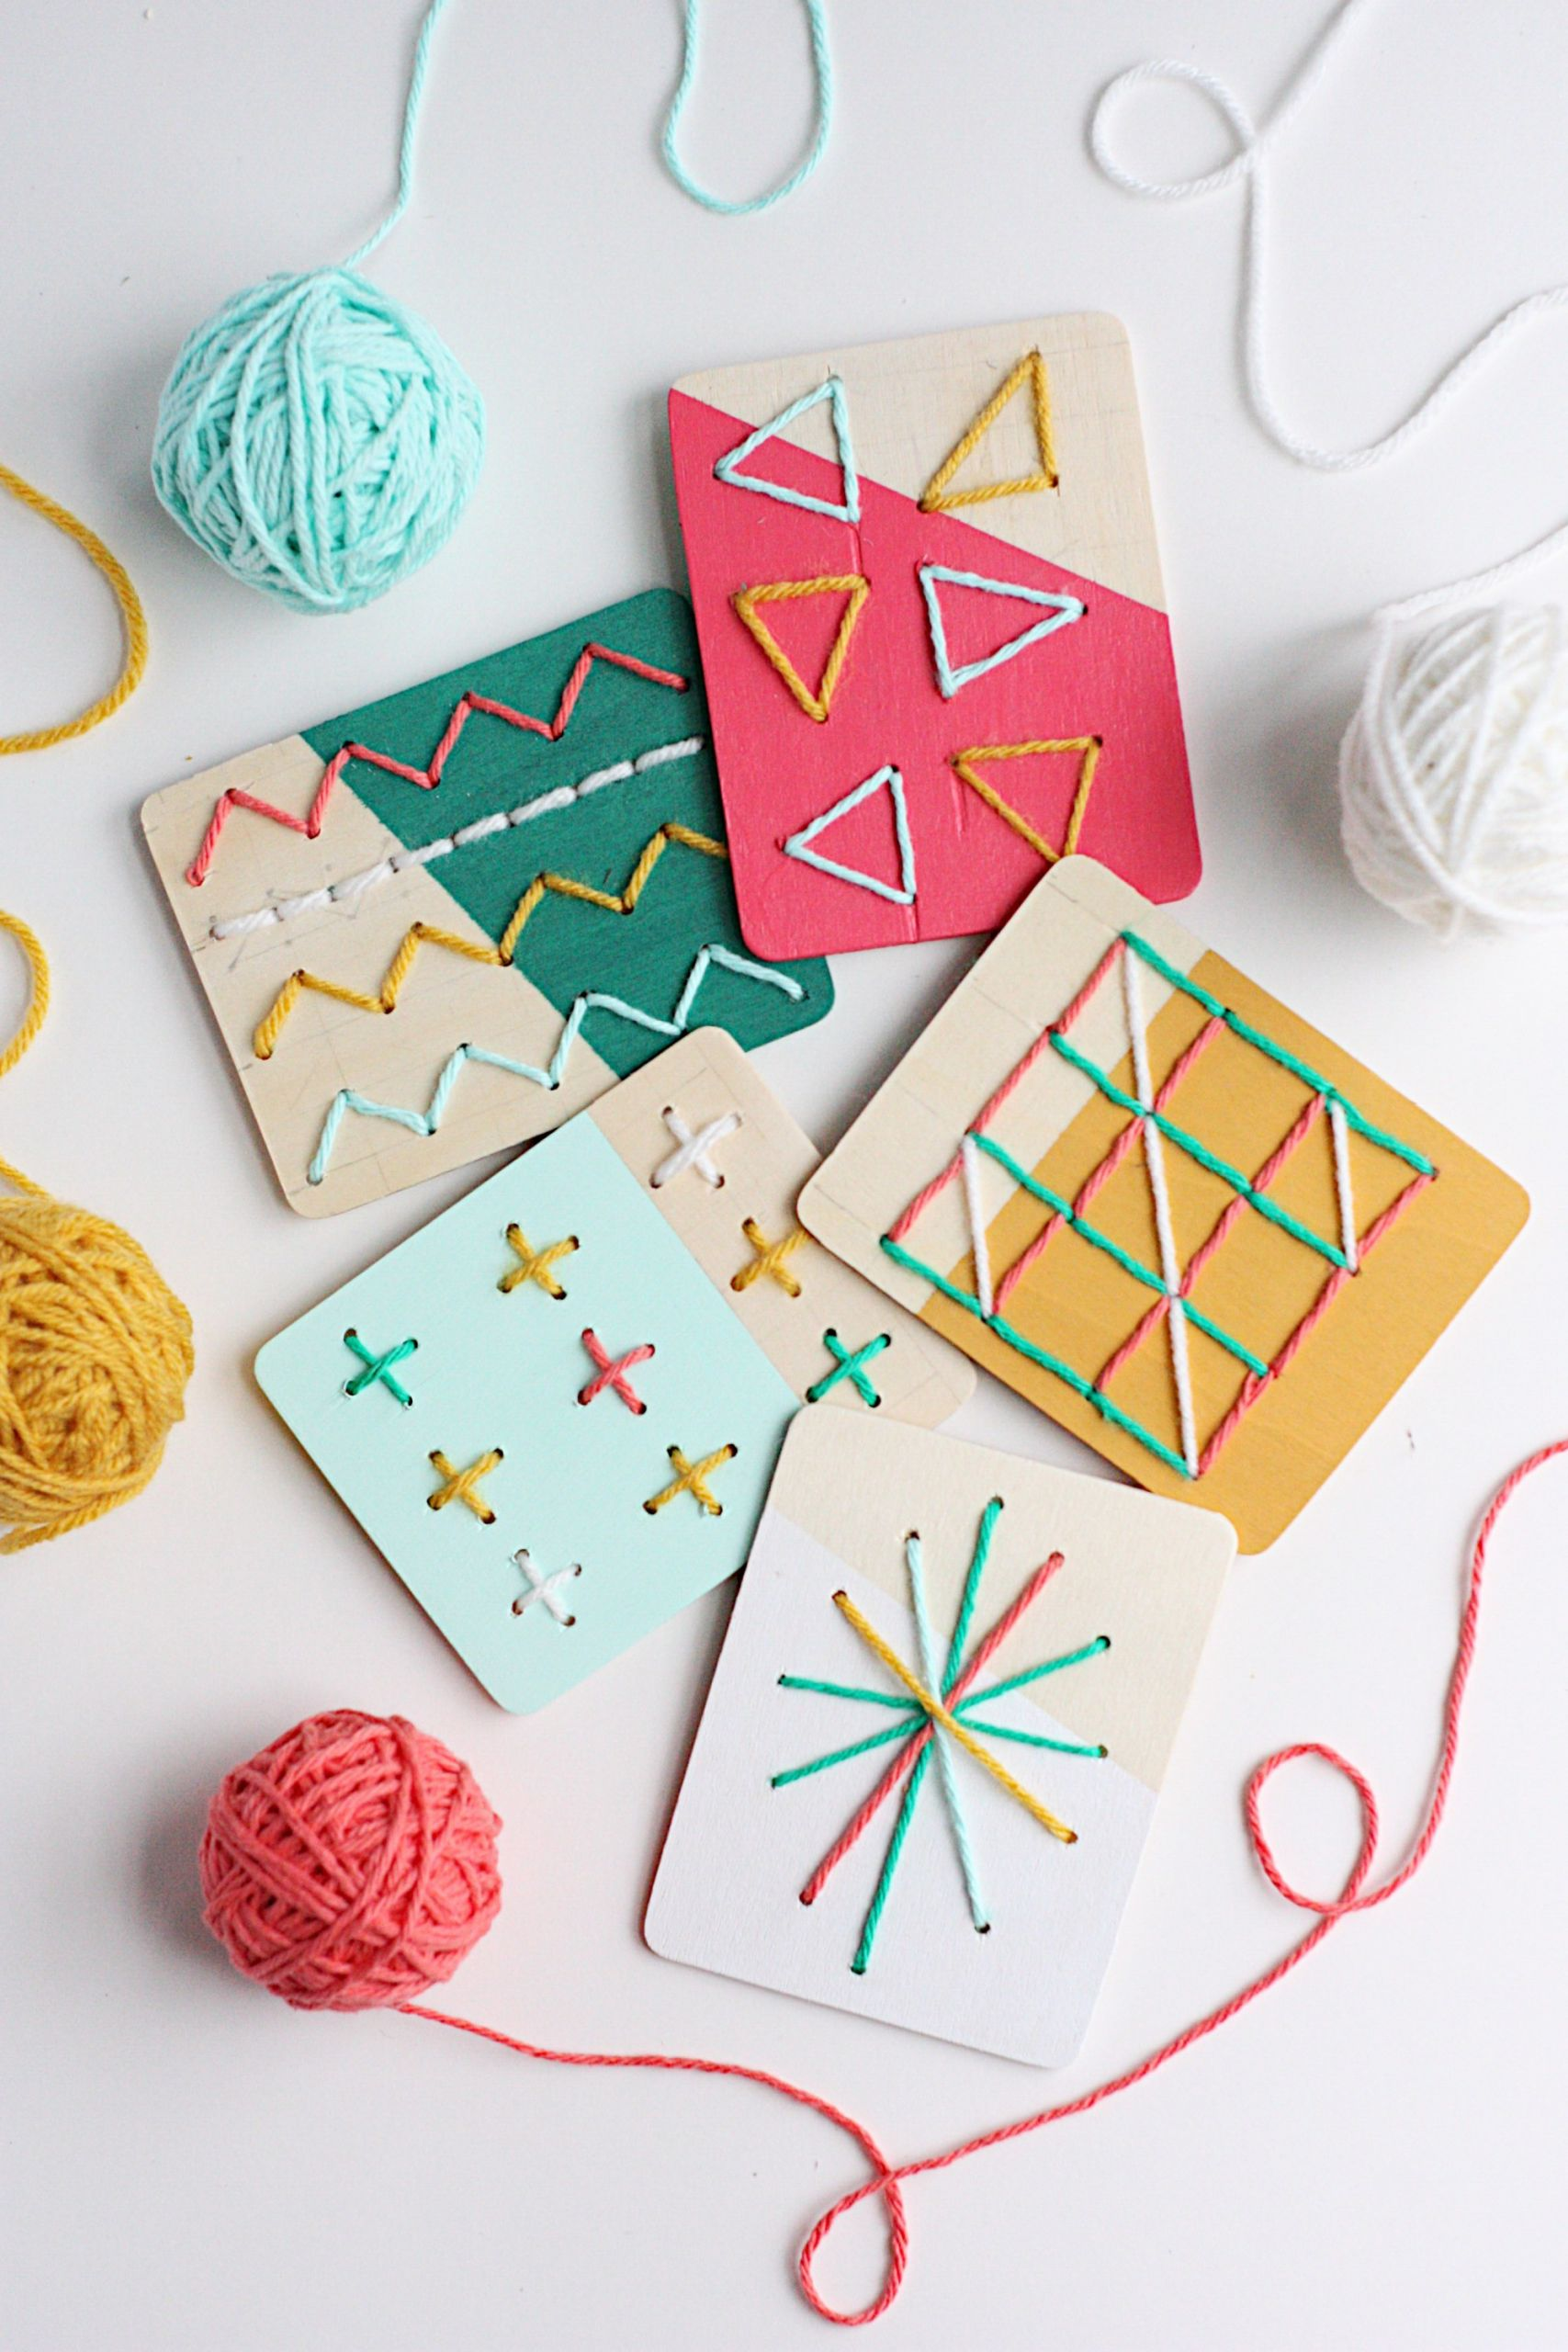 DIY Craft For Toddlers  11 DIY Yarn Crafts That Will Amaze Your Kids Shelterness